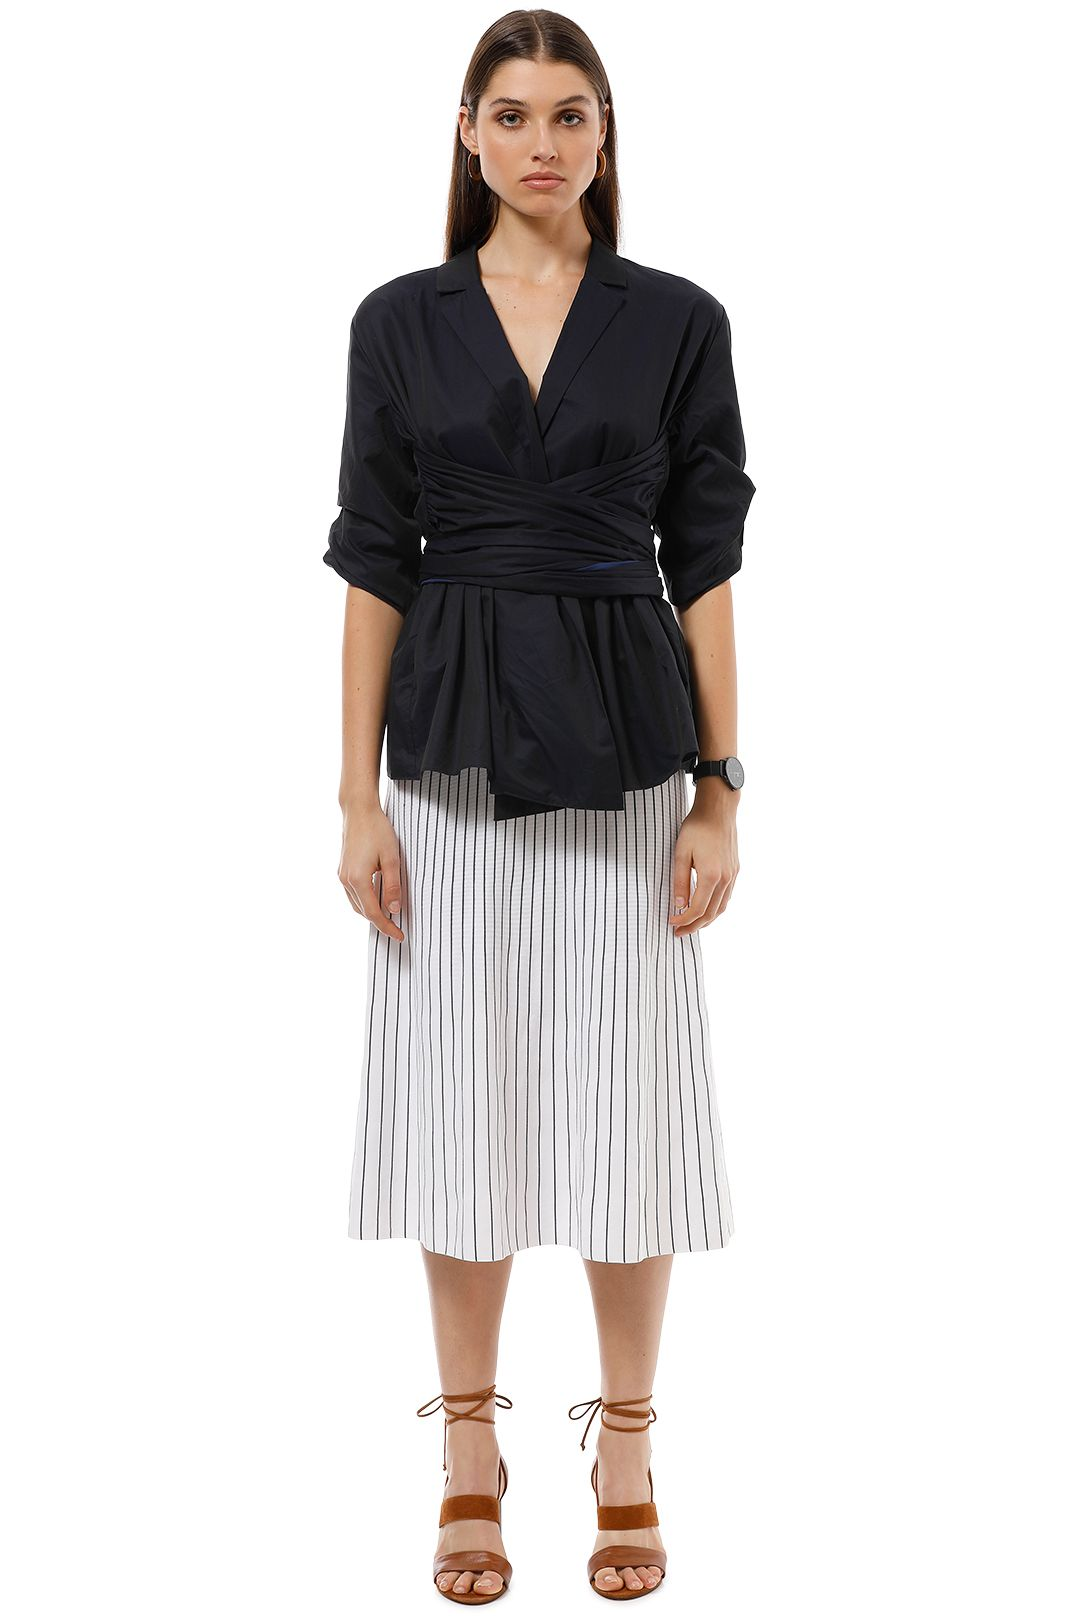 Camilla and Marc - Clarissa Wrap Shirt - Navy - Front